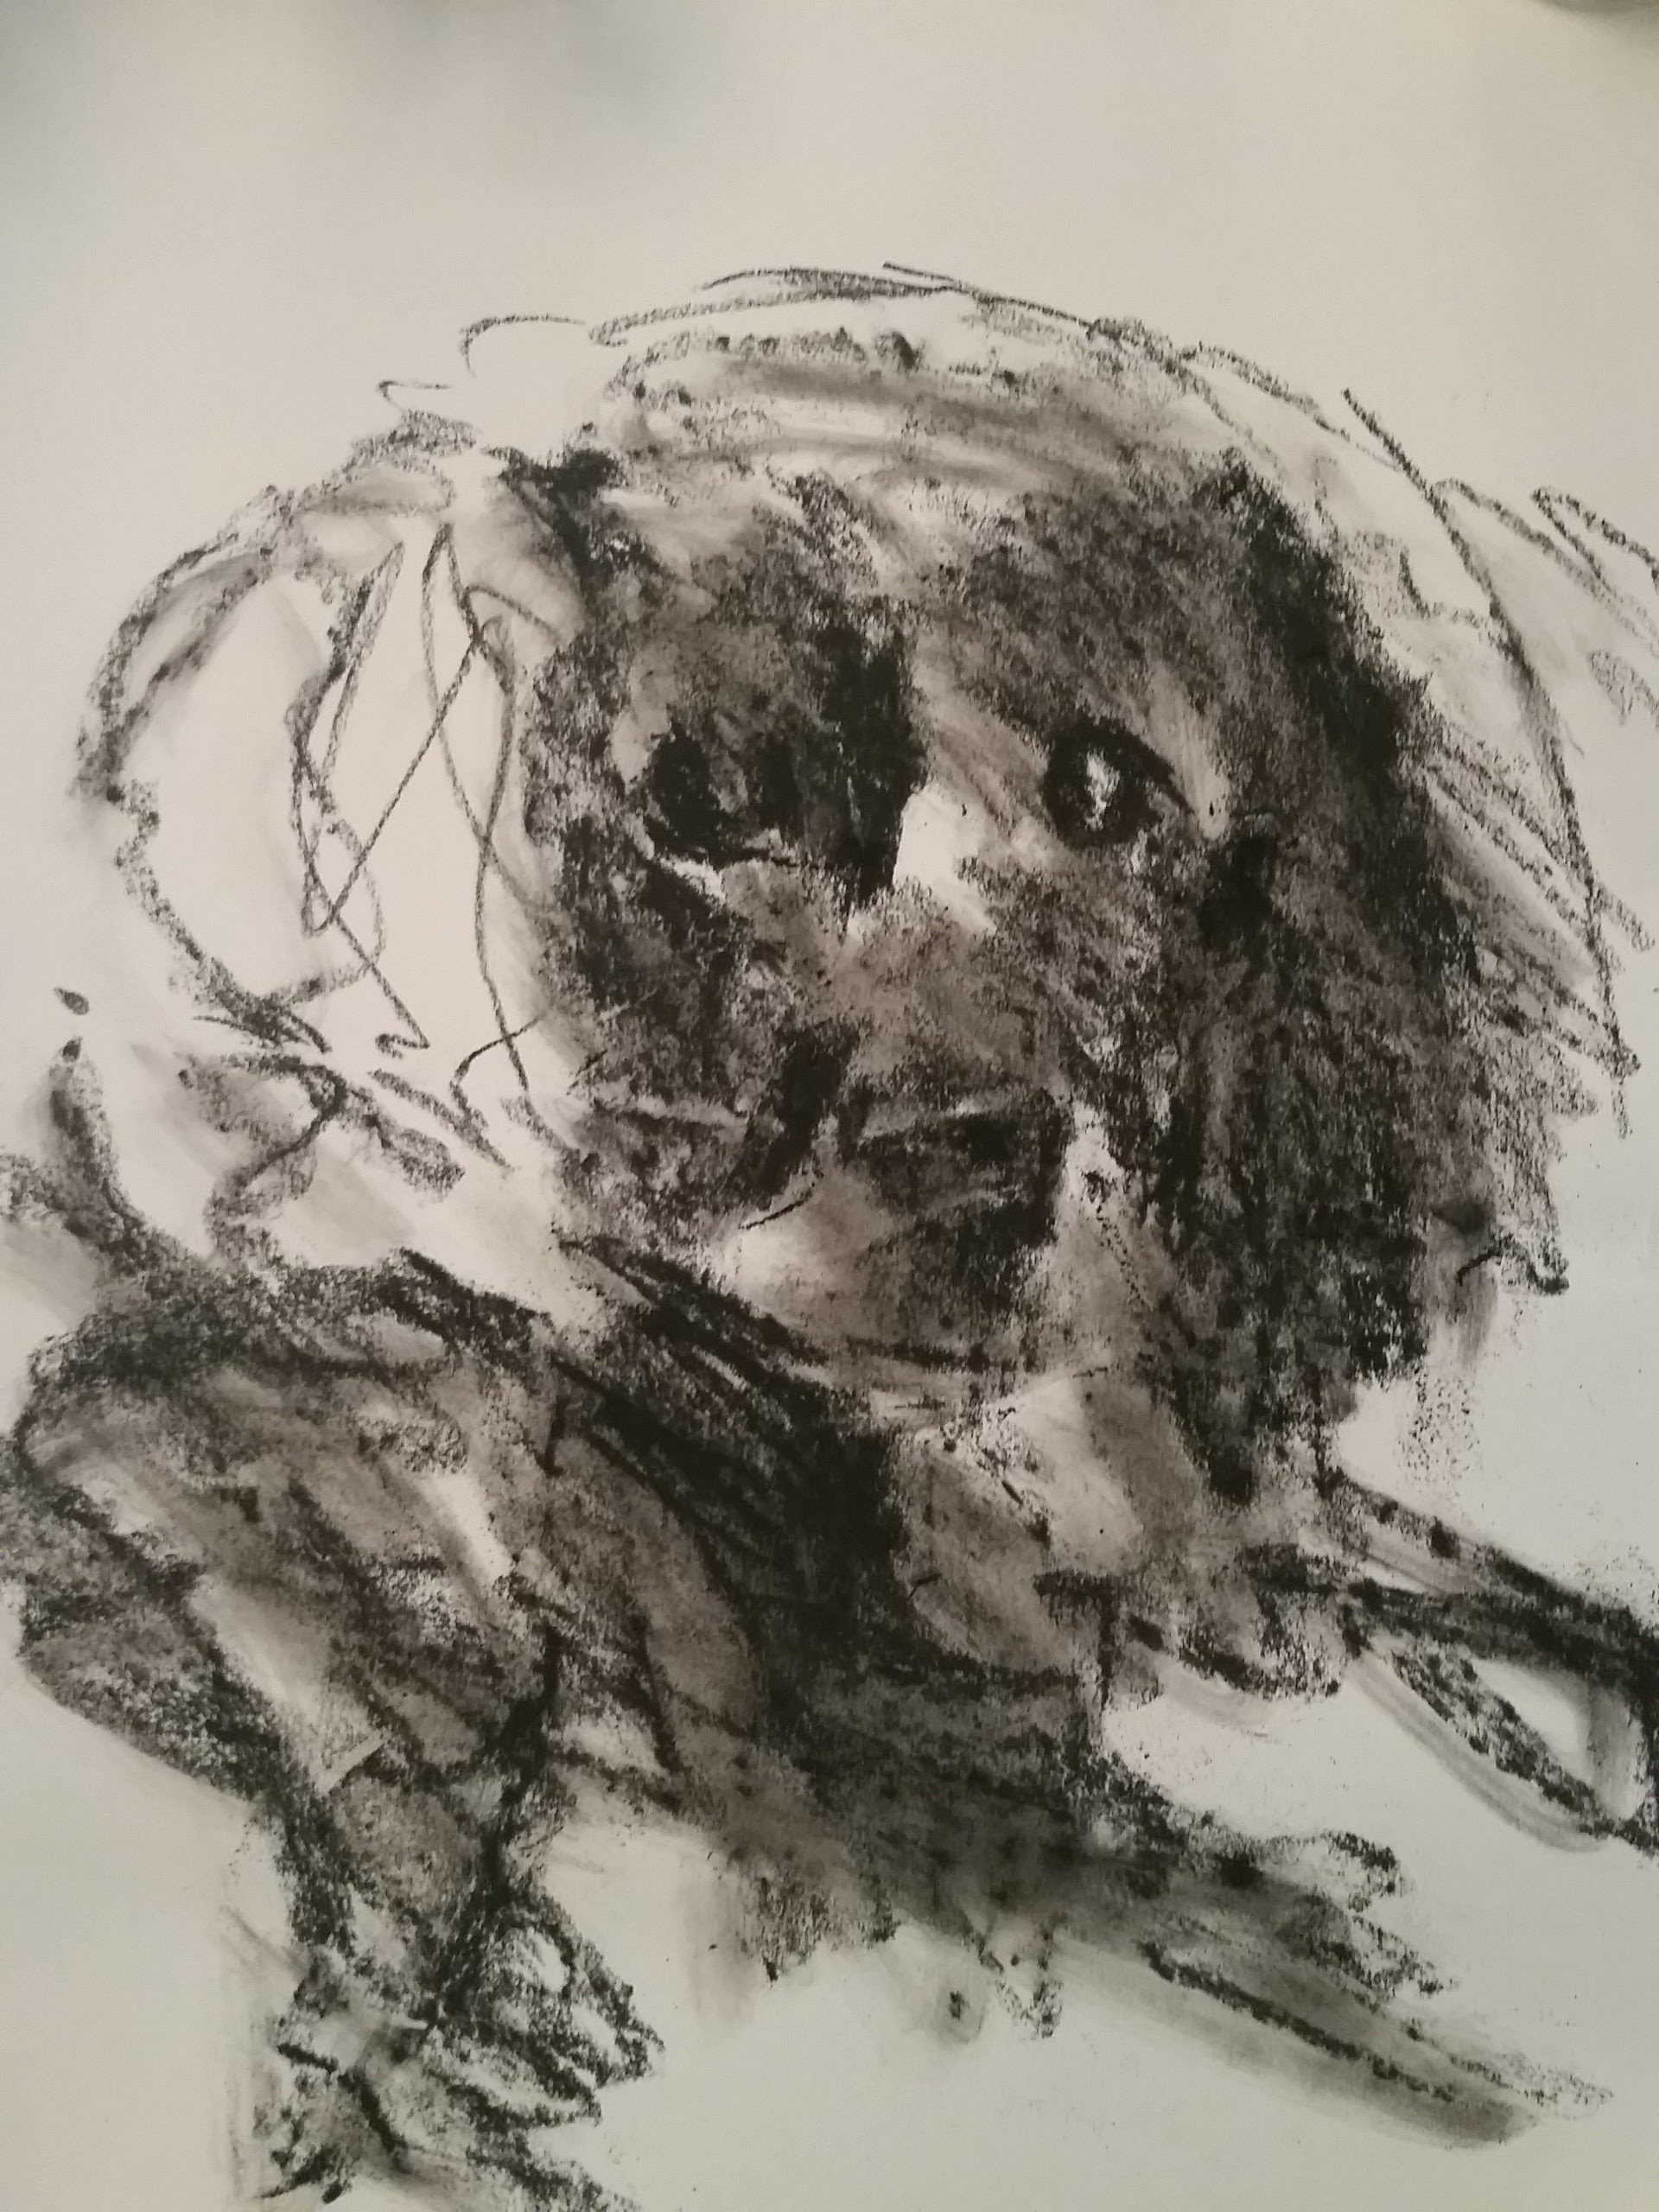 <p>I&#8217;m launching a new project where I post a drawing or painting with a dog as the subject on Instagram for 365 days. Why? One reason is it&#8217;s a way for me to practice my skills as an artist. Another reason is I want to build a daily habit and [&hellip;]</p>